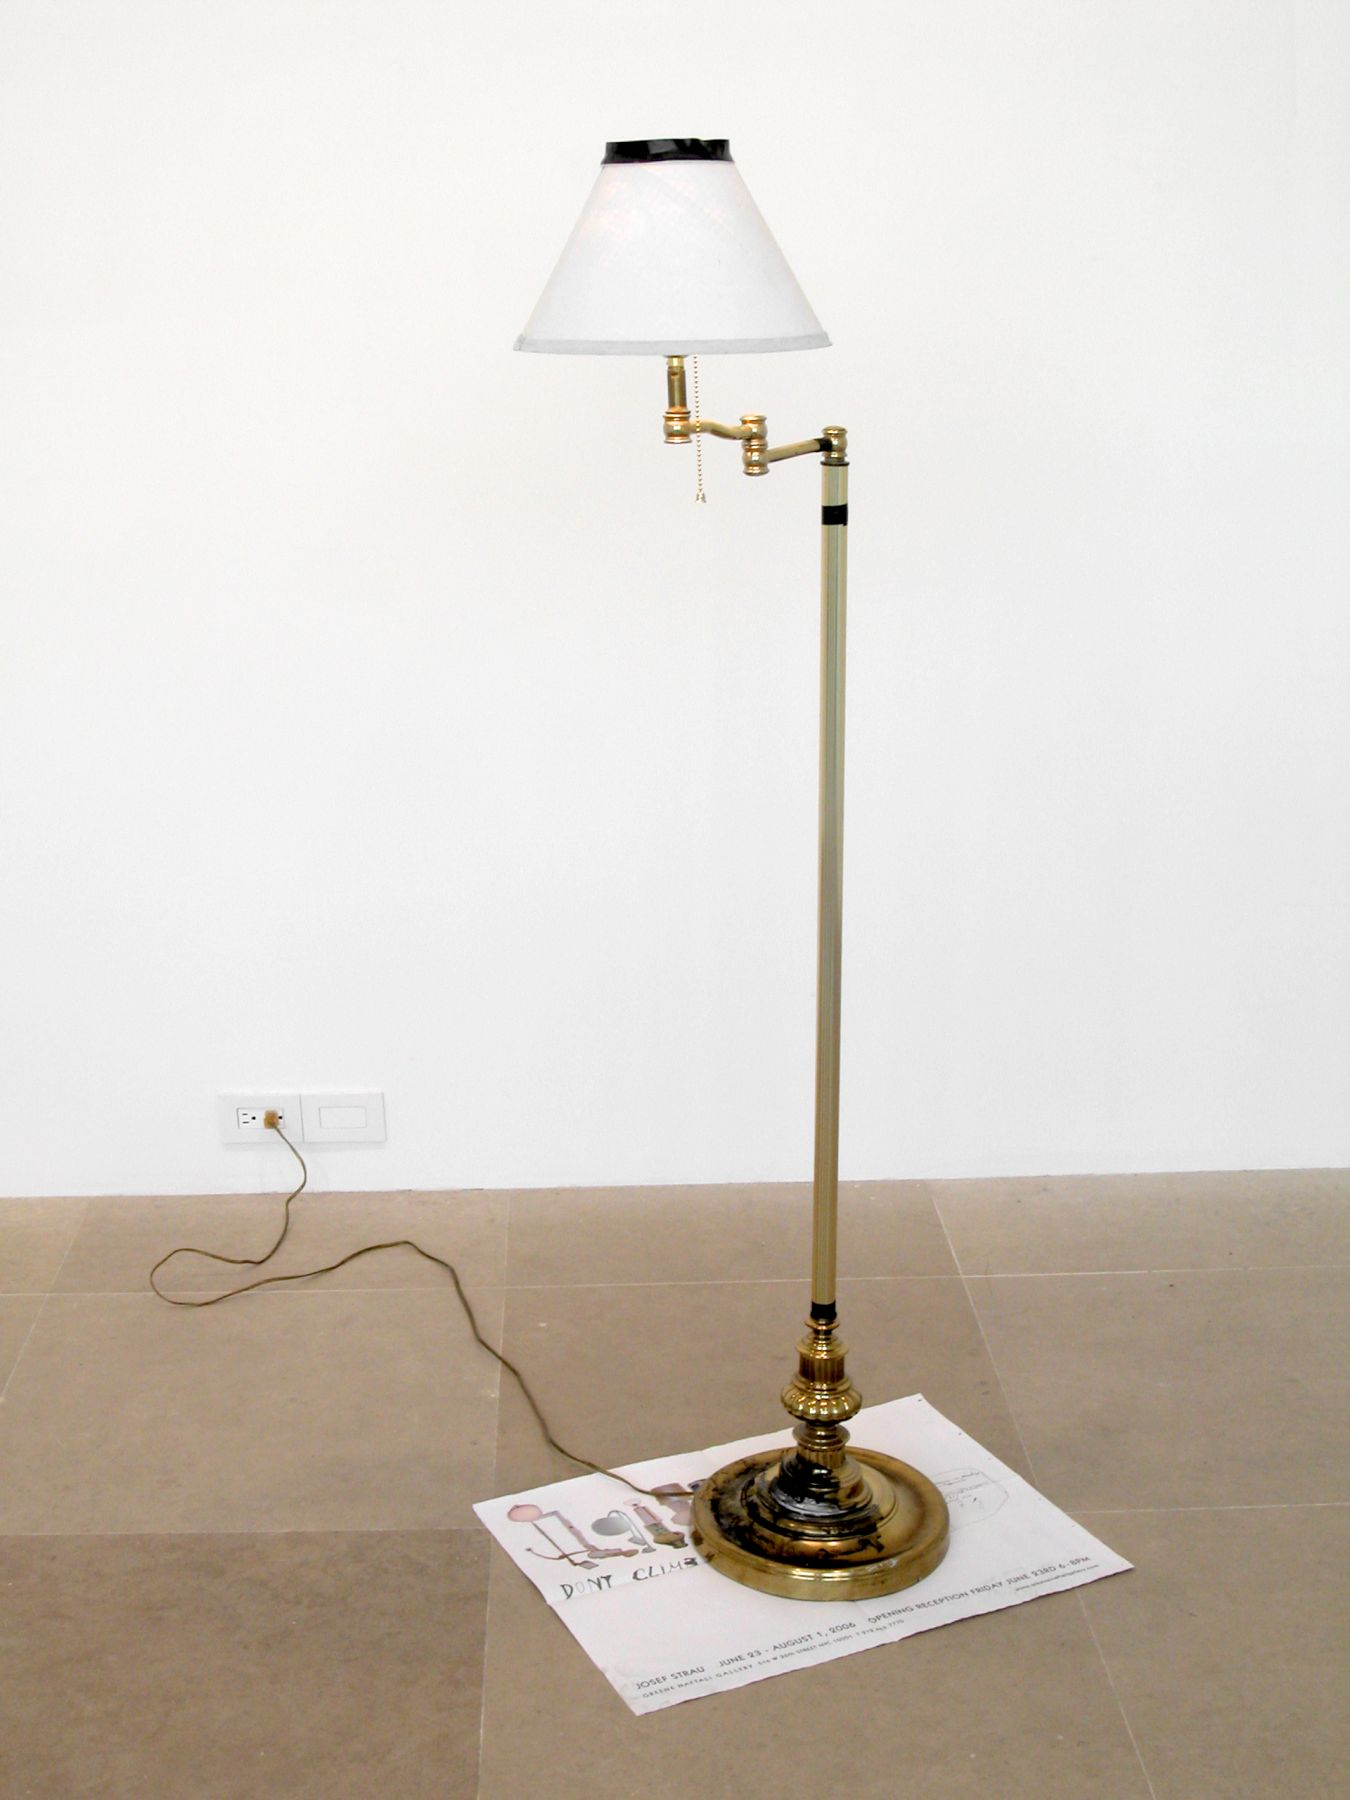 The Betrayal Lamp, 2006, mixed media lamp, 57 x 17 x 23 inches (144.8 x 43.2 x 58.4 cm)